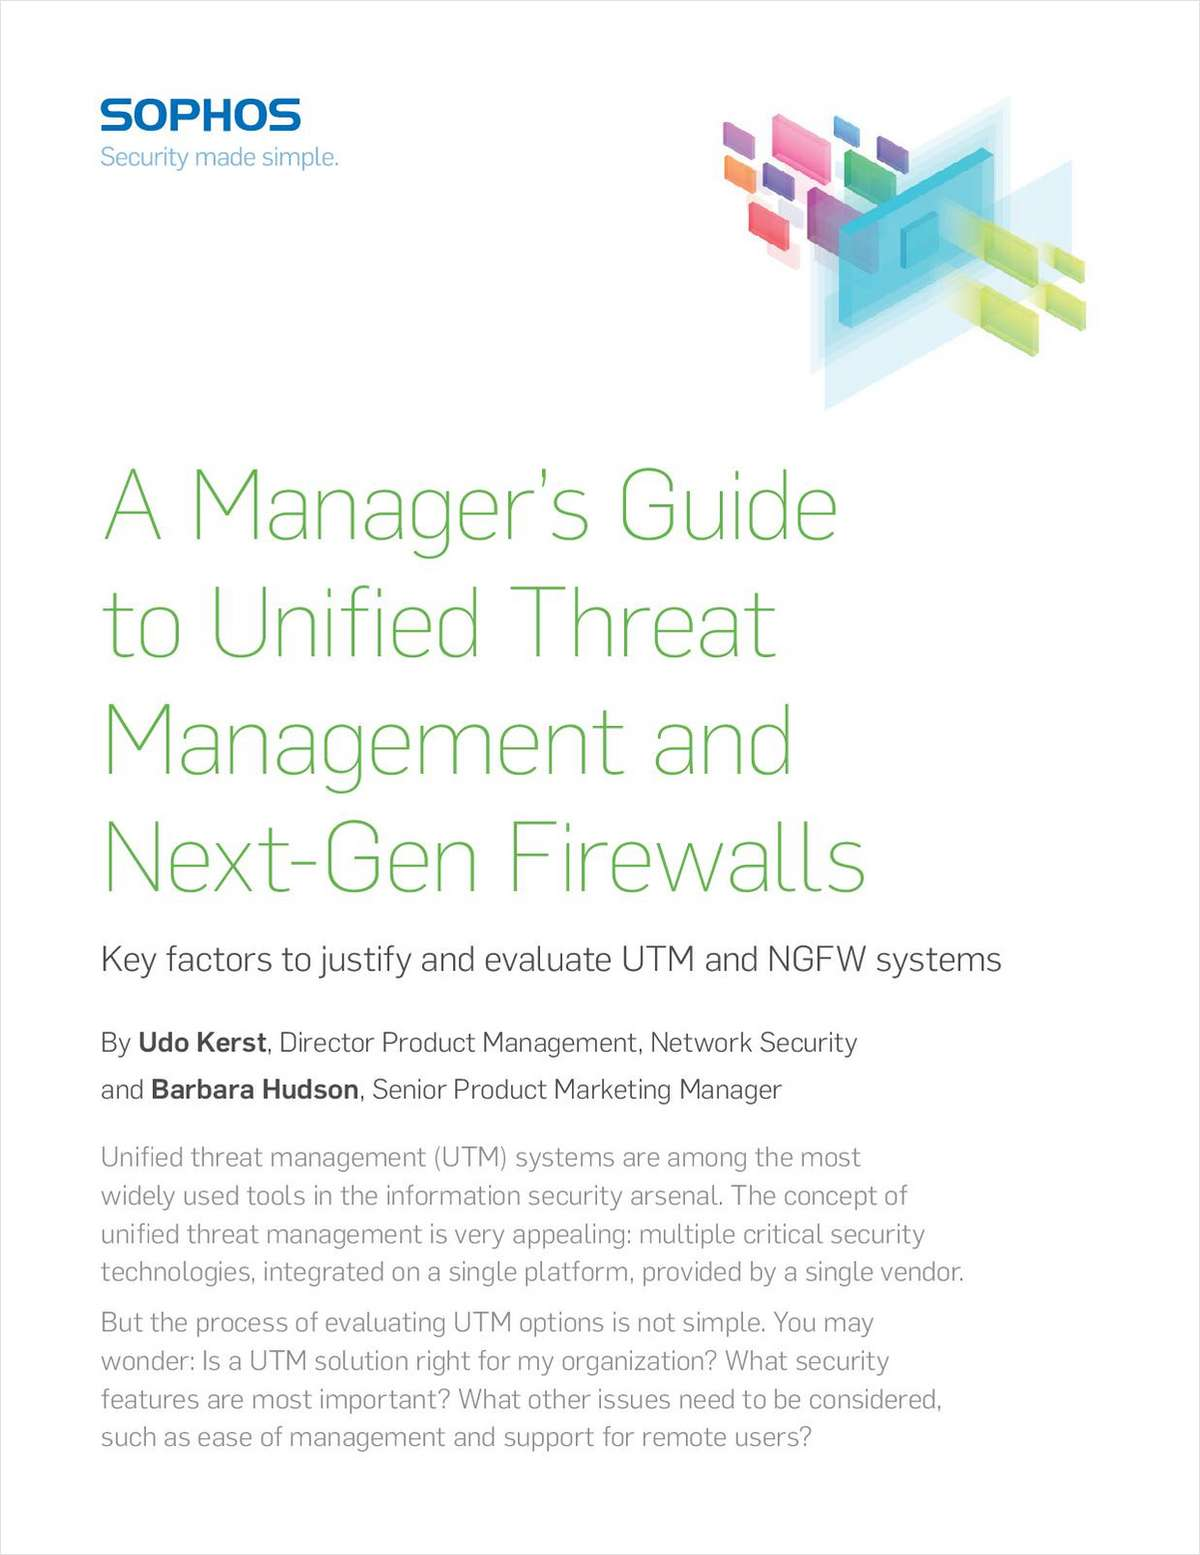 A Manager's Guide to Unified Threat Management and Next-Gen Firewalls